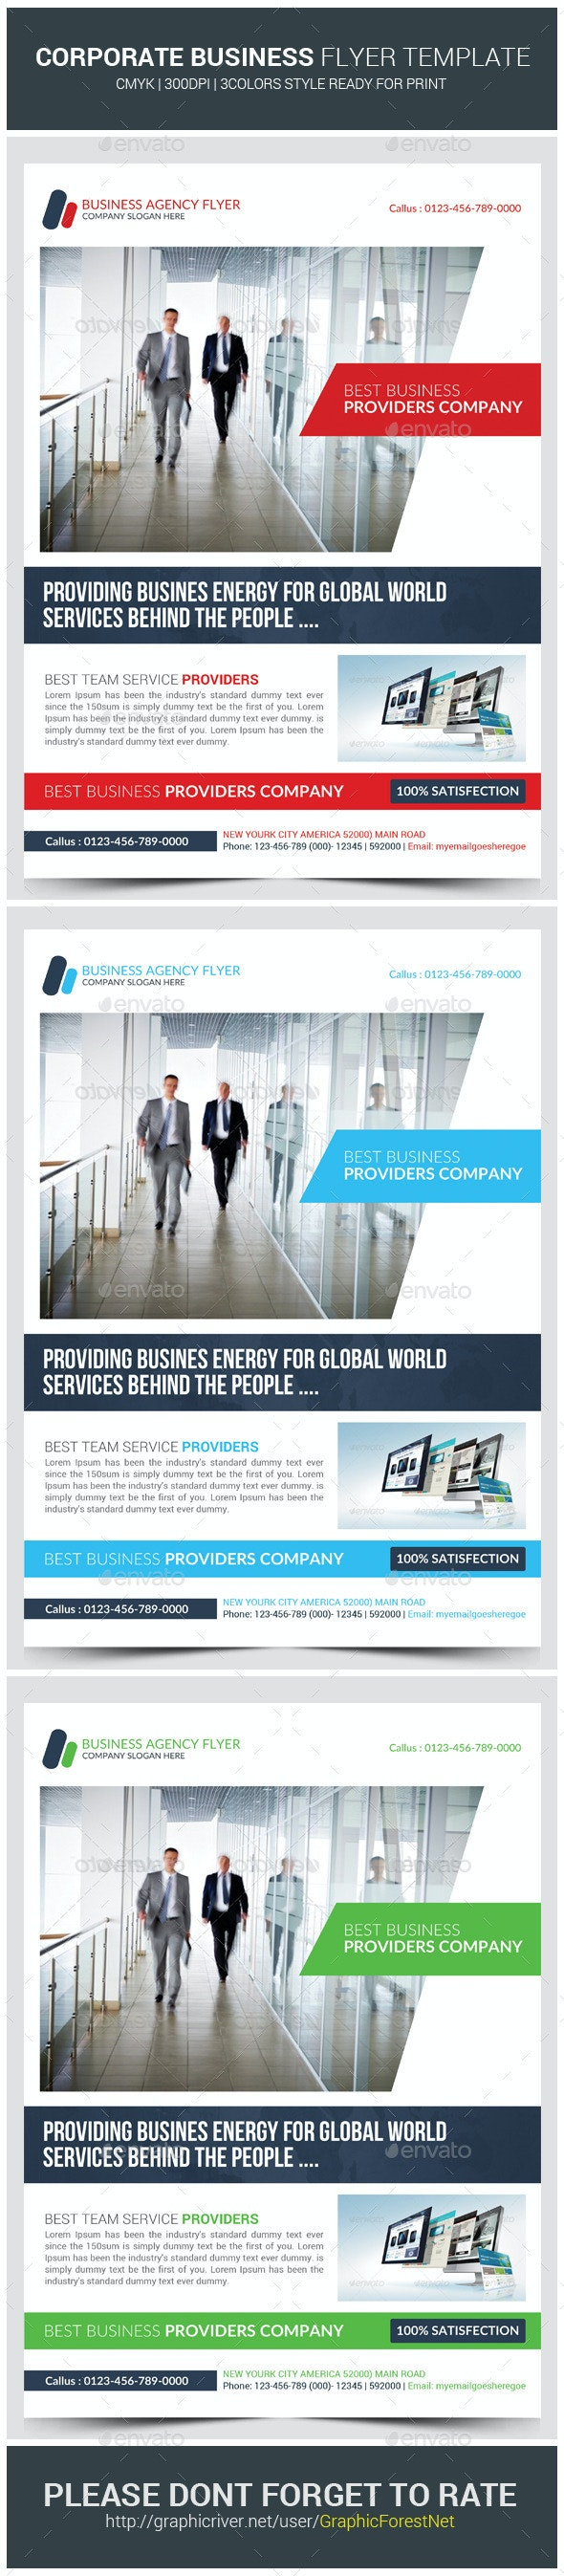 Corporate Business Office Flyer Template - Corporate Flyers